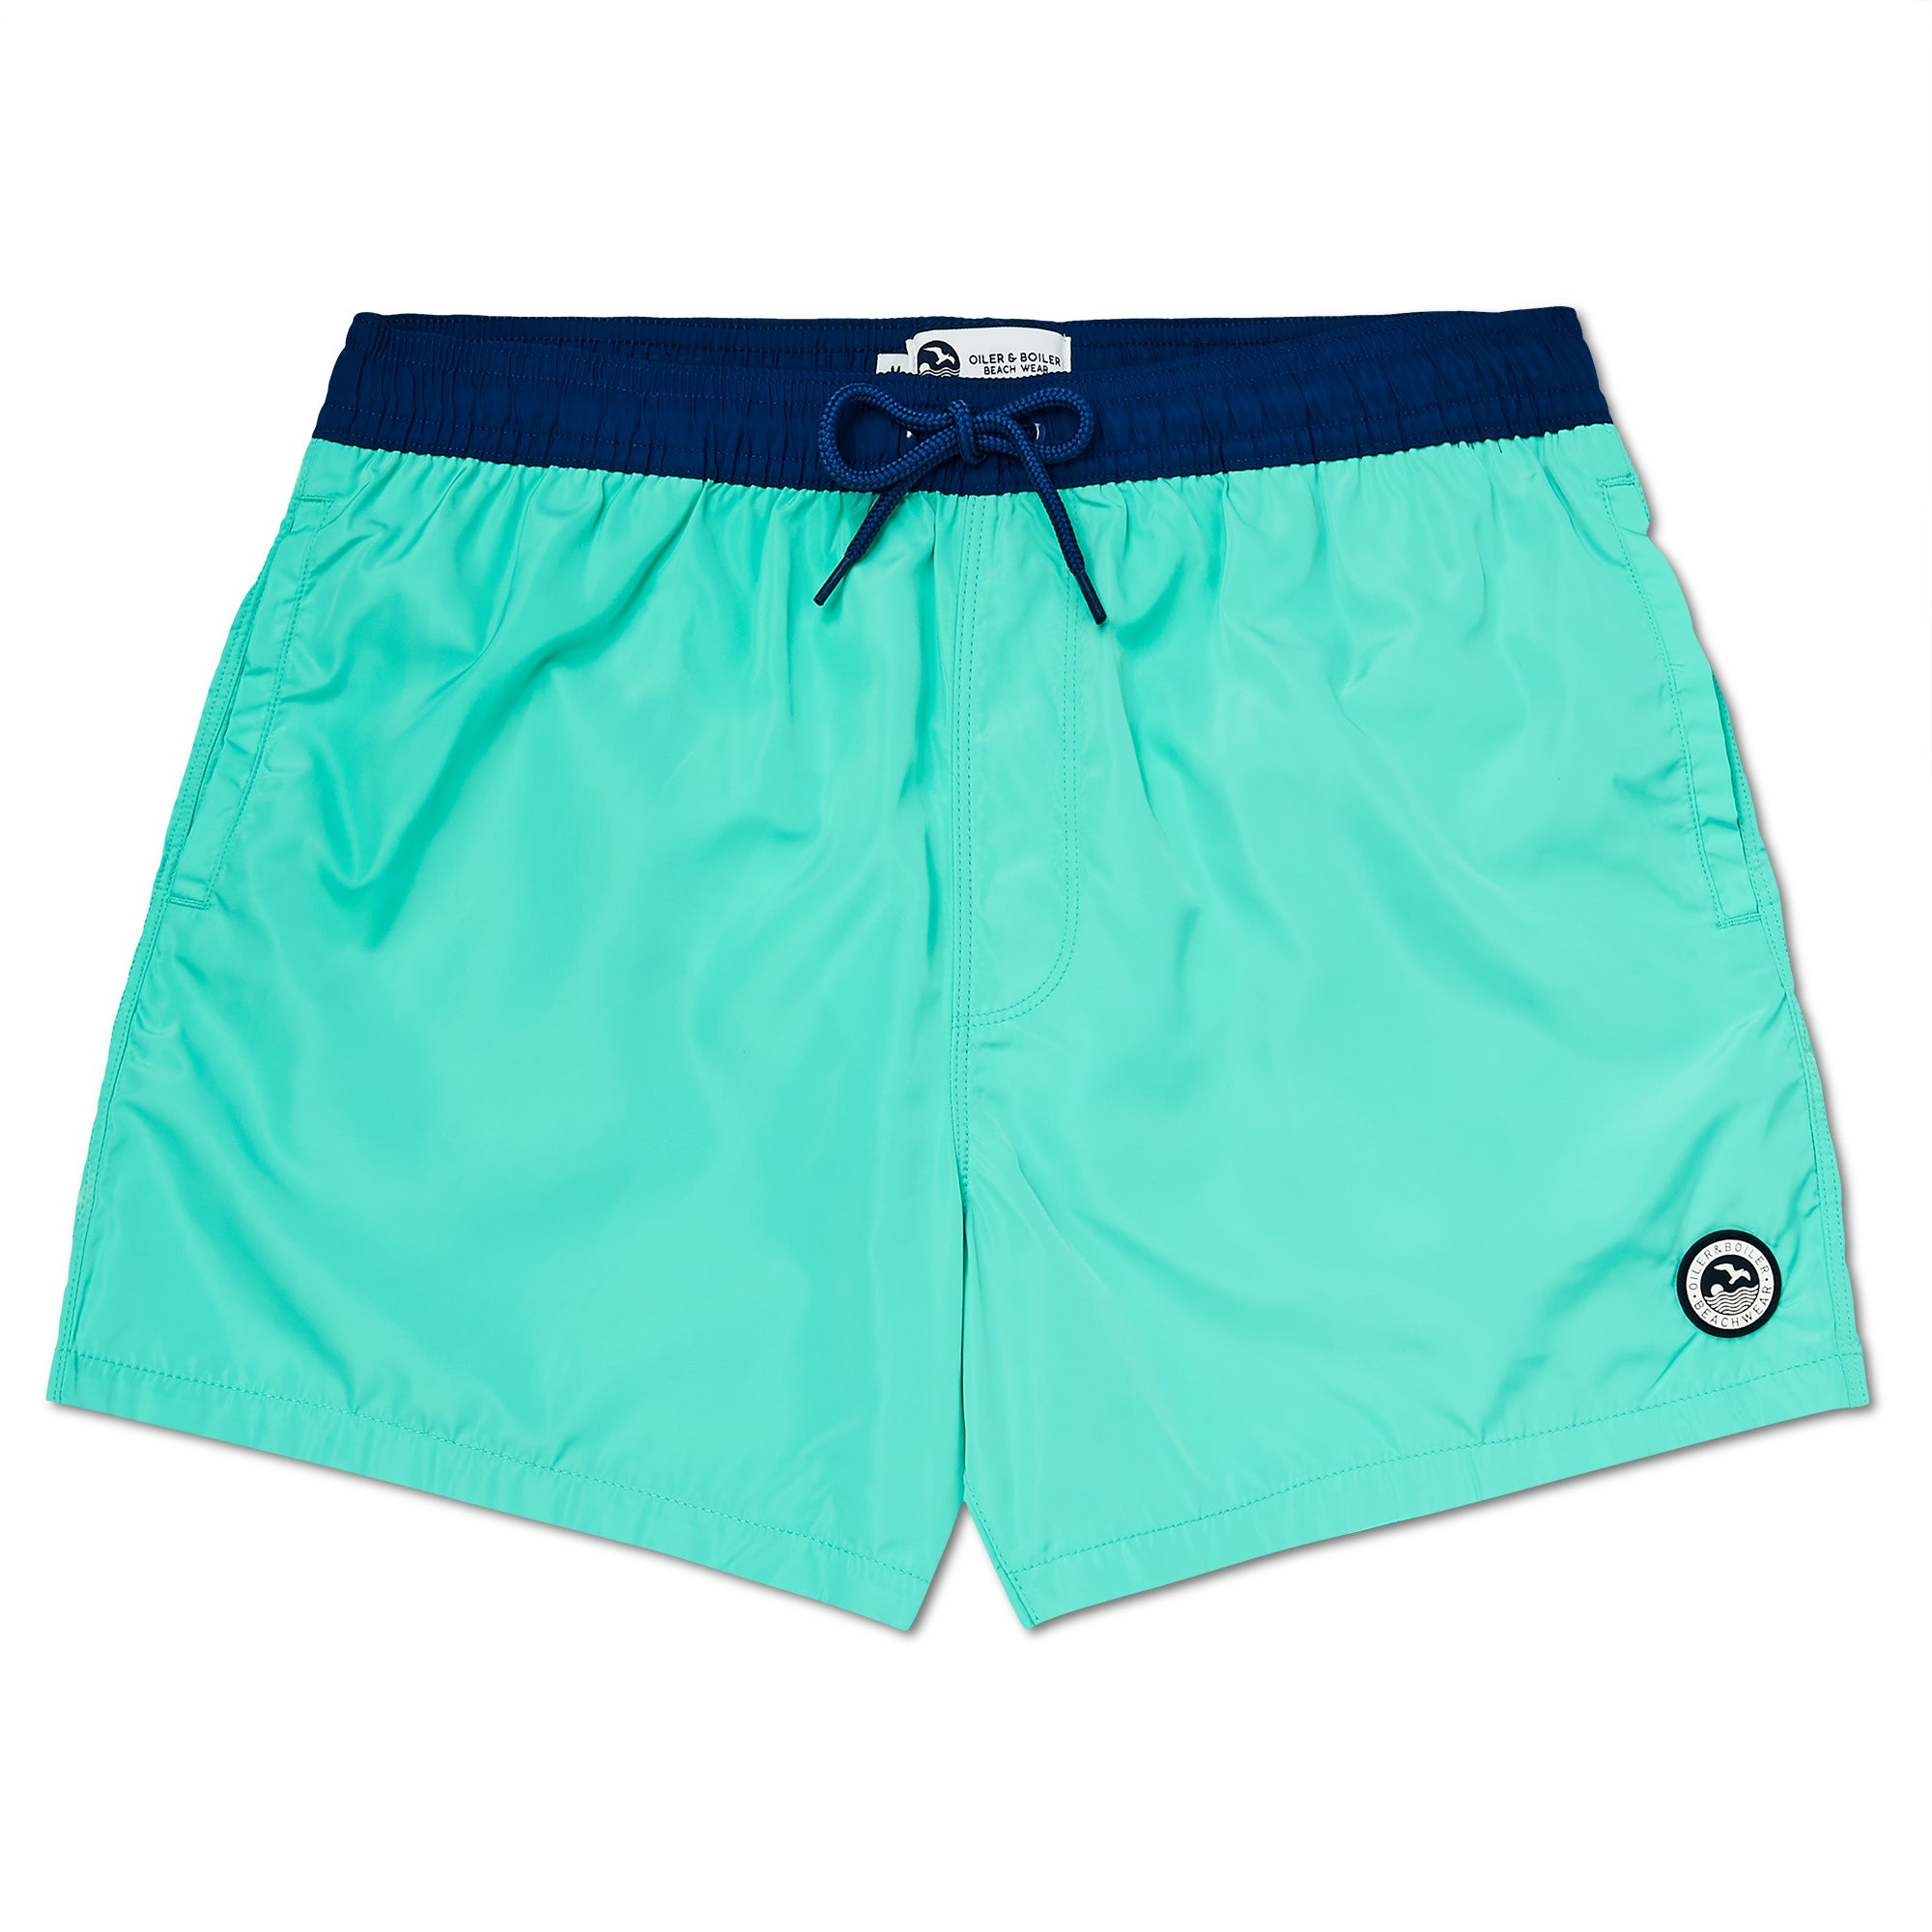 Sea Green & Marine Blue Logo Swim Short, Regular Length